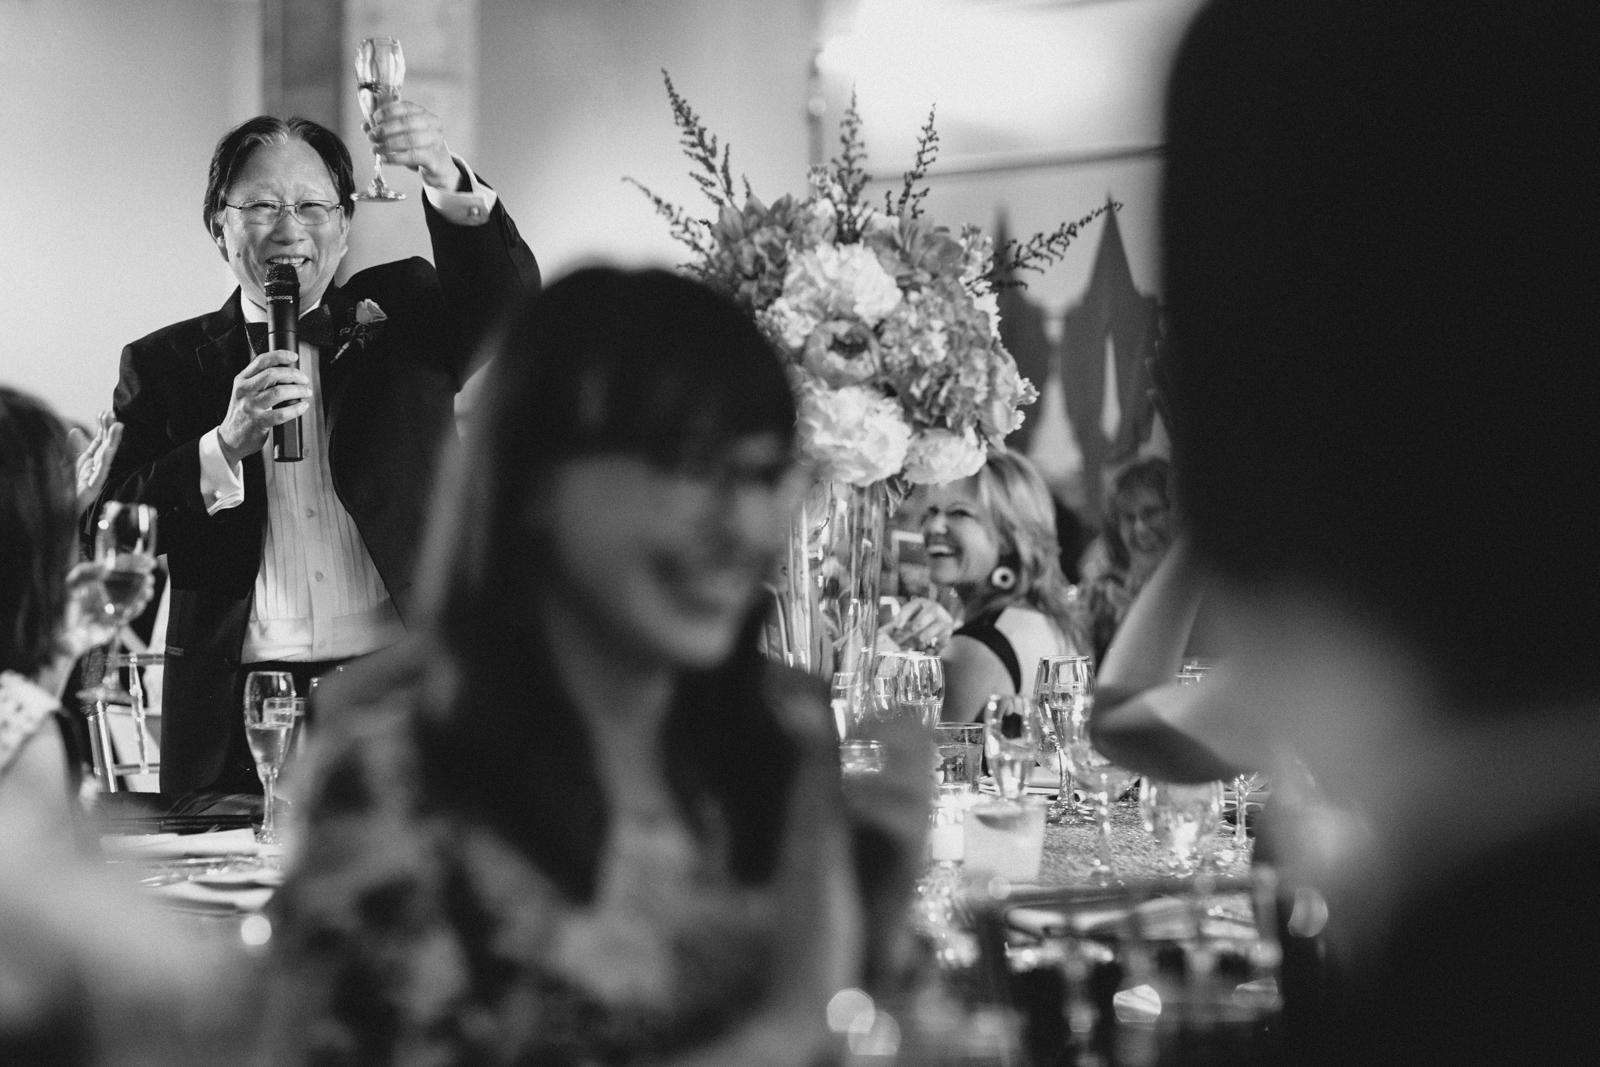 Fountain-Street-Church-and-Urban-Institute-of-Contemporary-Arts-Wedding-Kirstin-and-Khoi-021.jpg